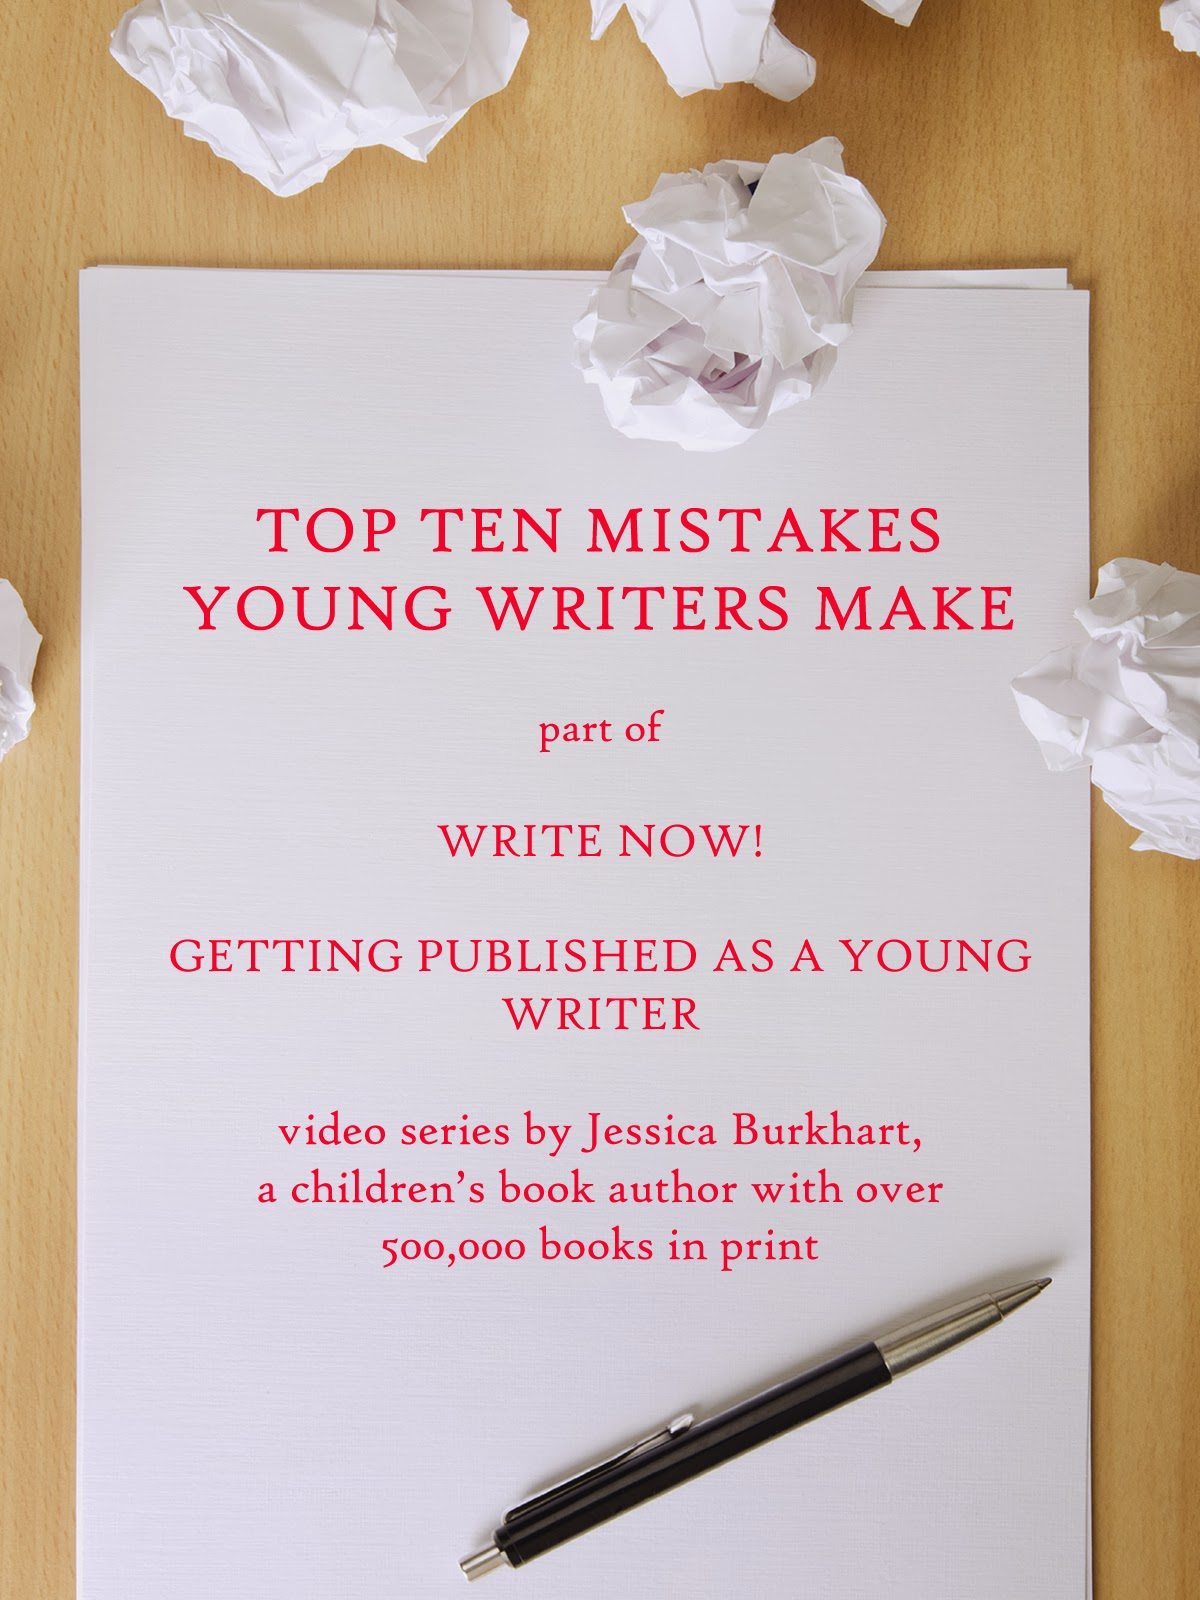 Top Ten Mistakes Young Writers Make